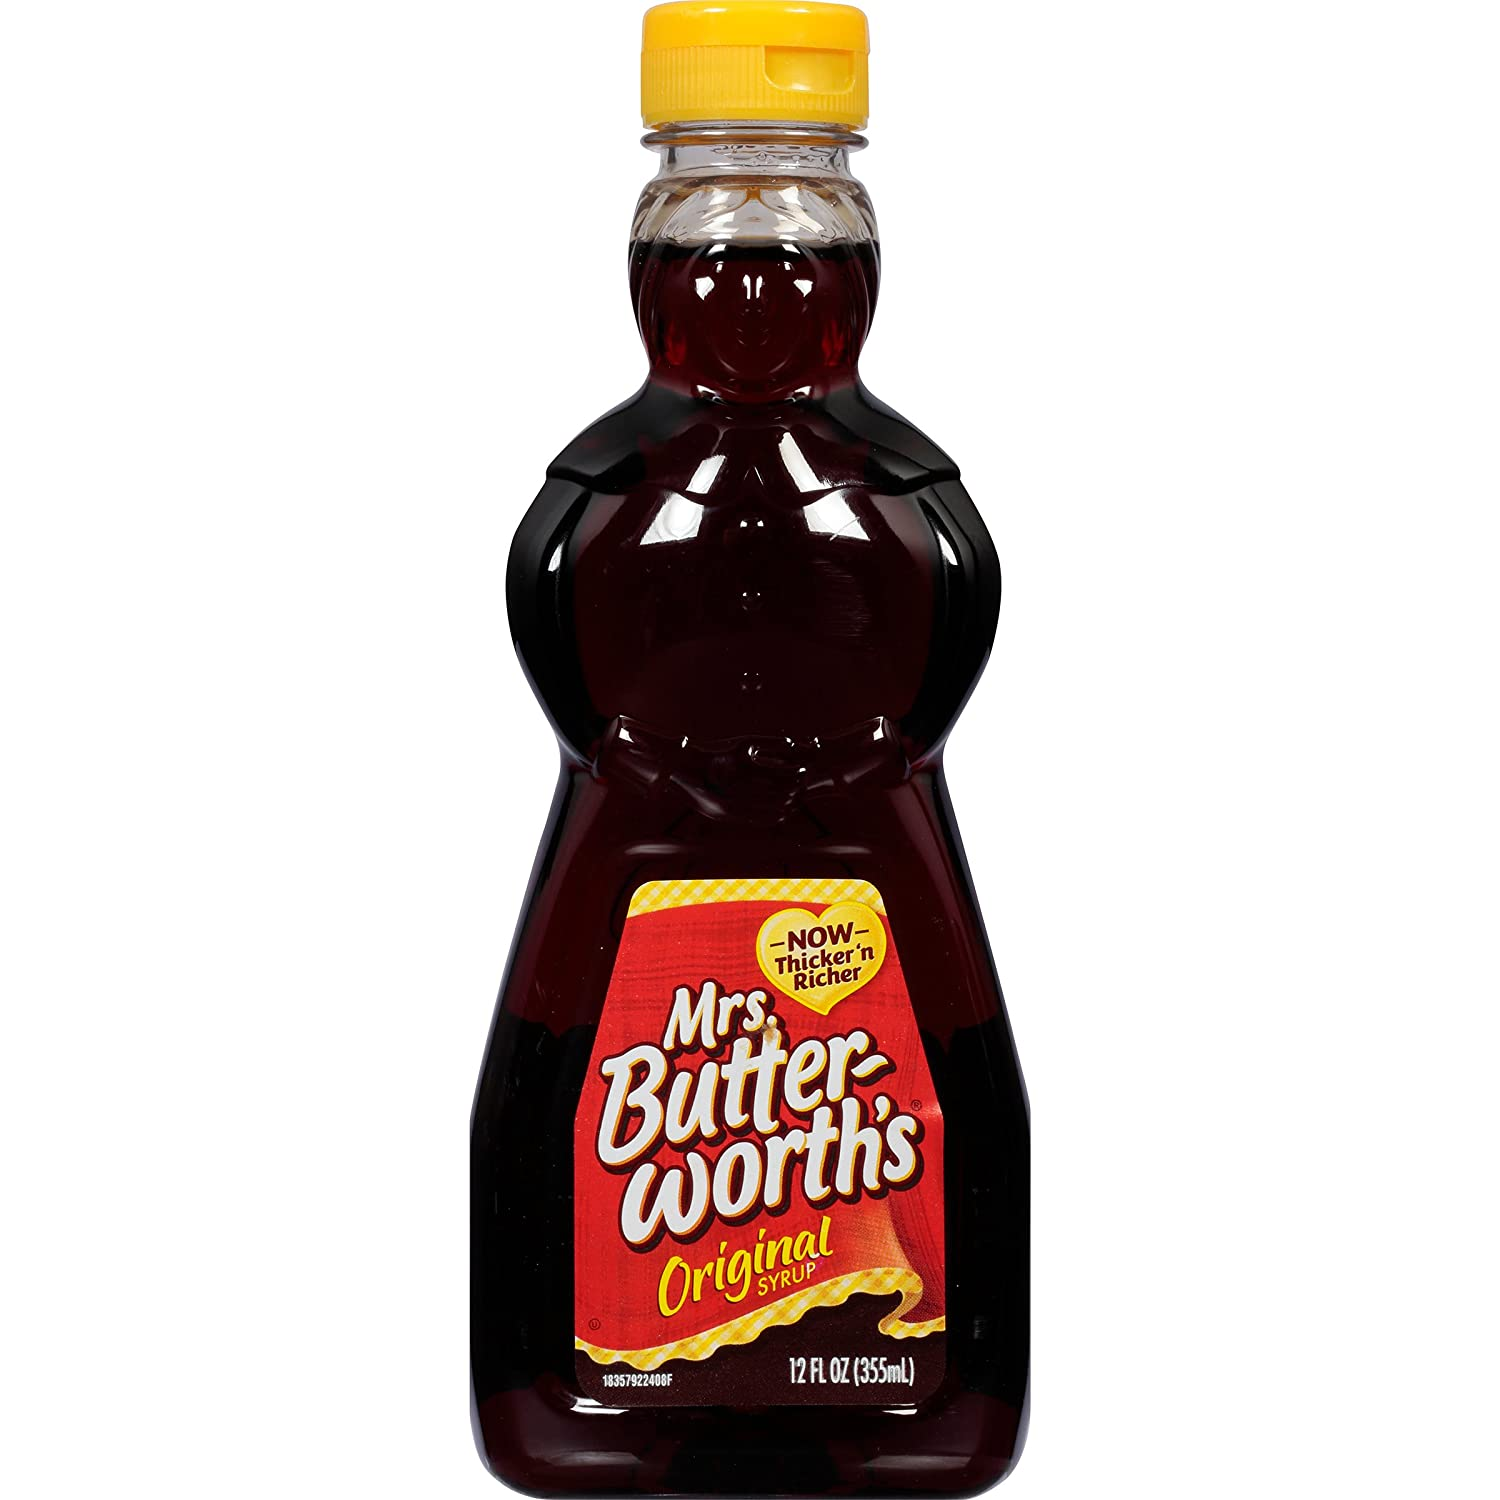 Mrs. Butterworth's Original Thick and Rich Pancake Syrup, 12 oz.